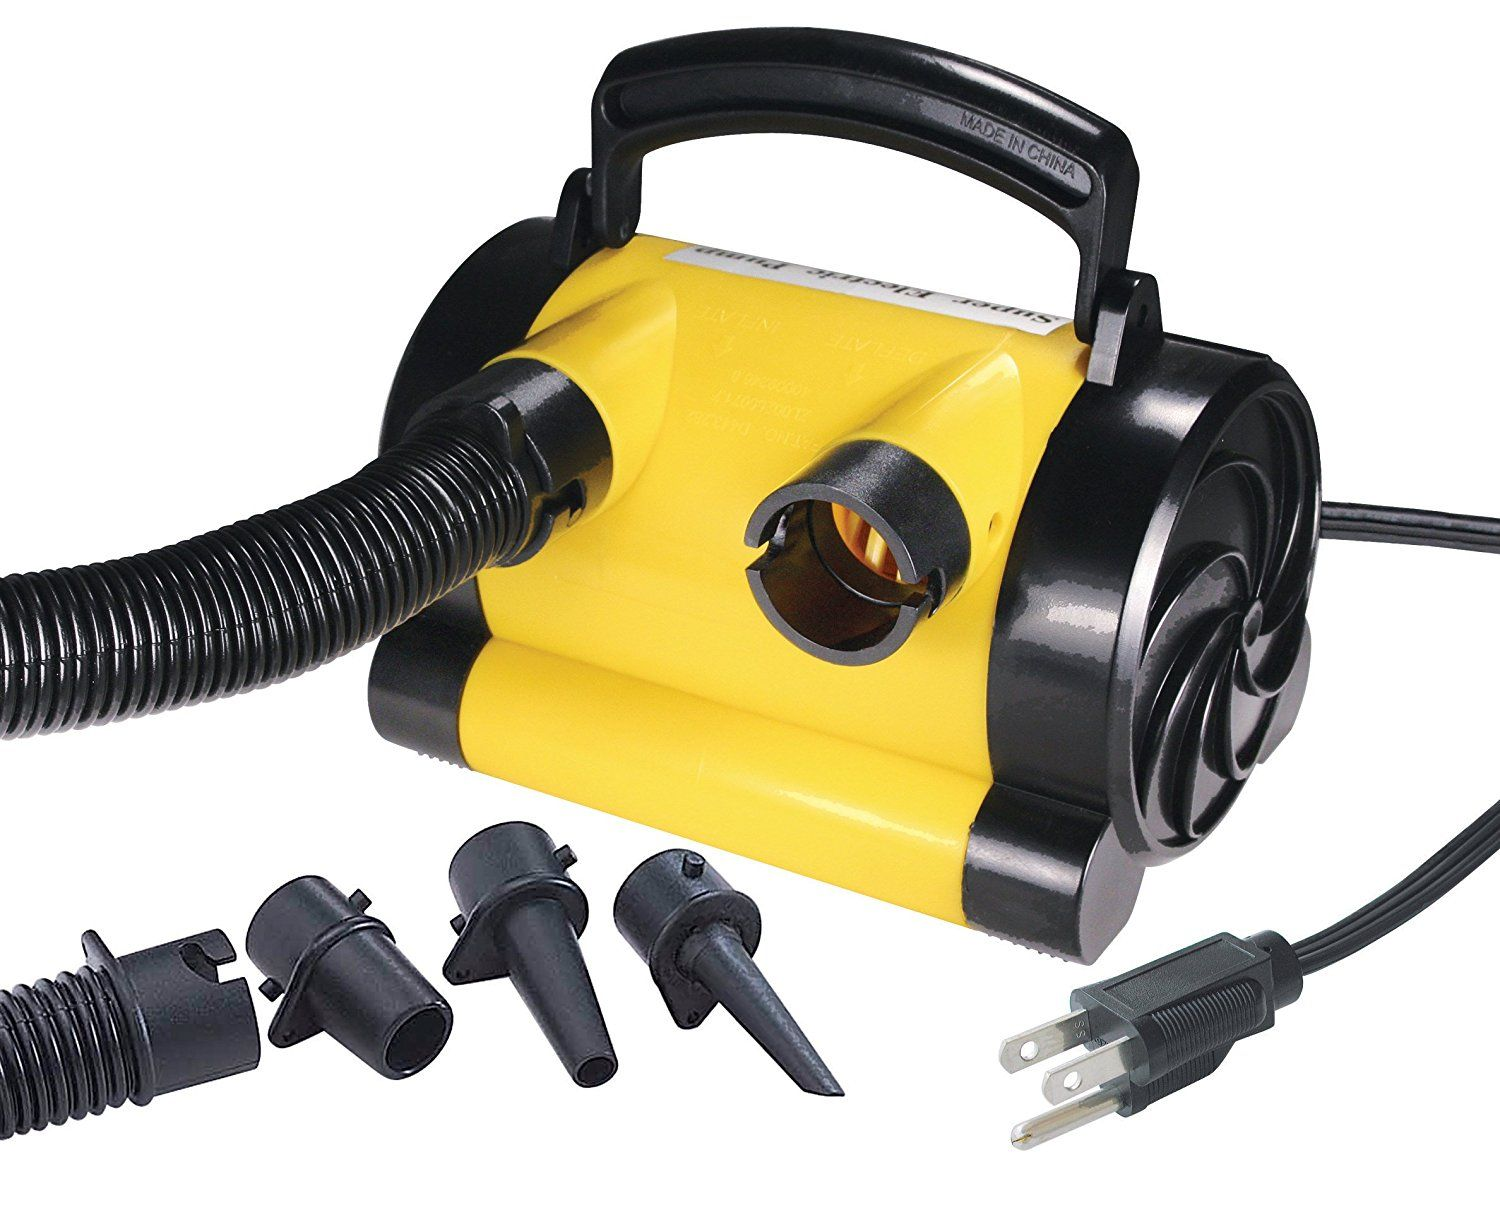 Best Air Pump for Inflatables Top 4 Air Pumps Reviewed